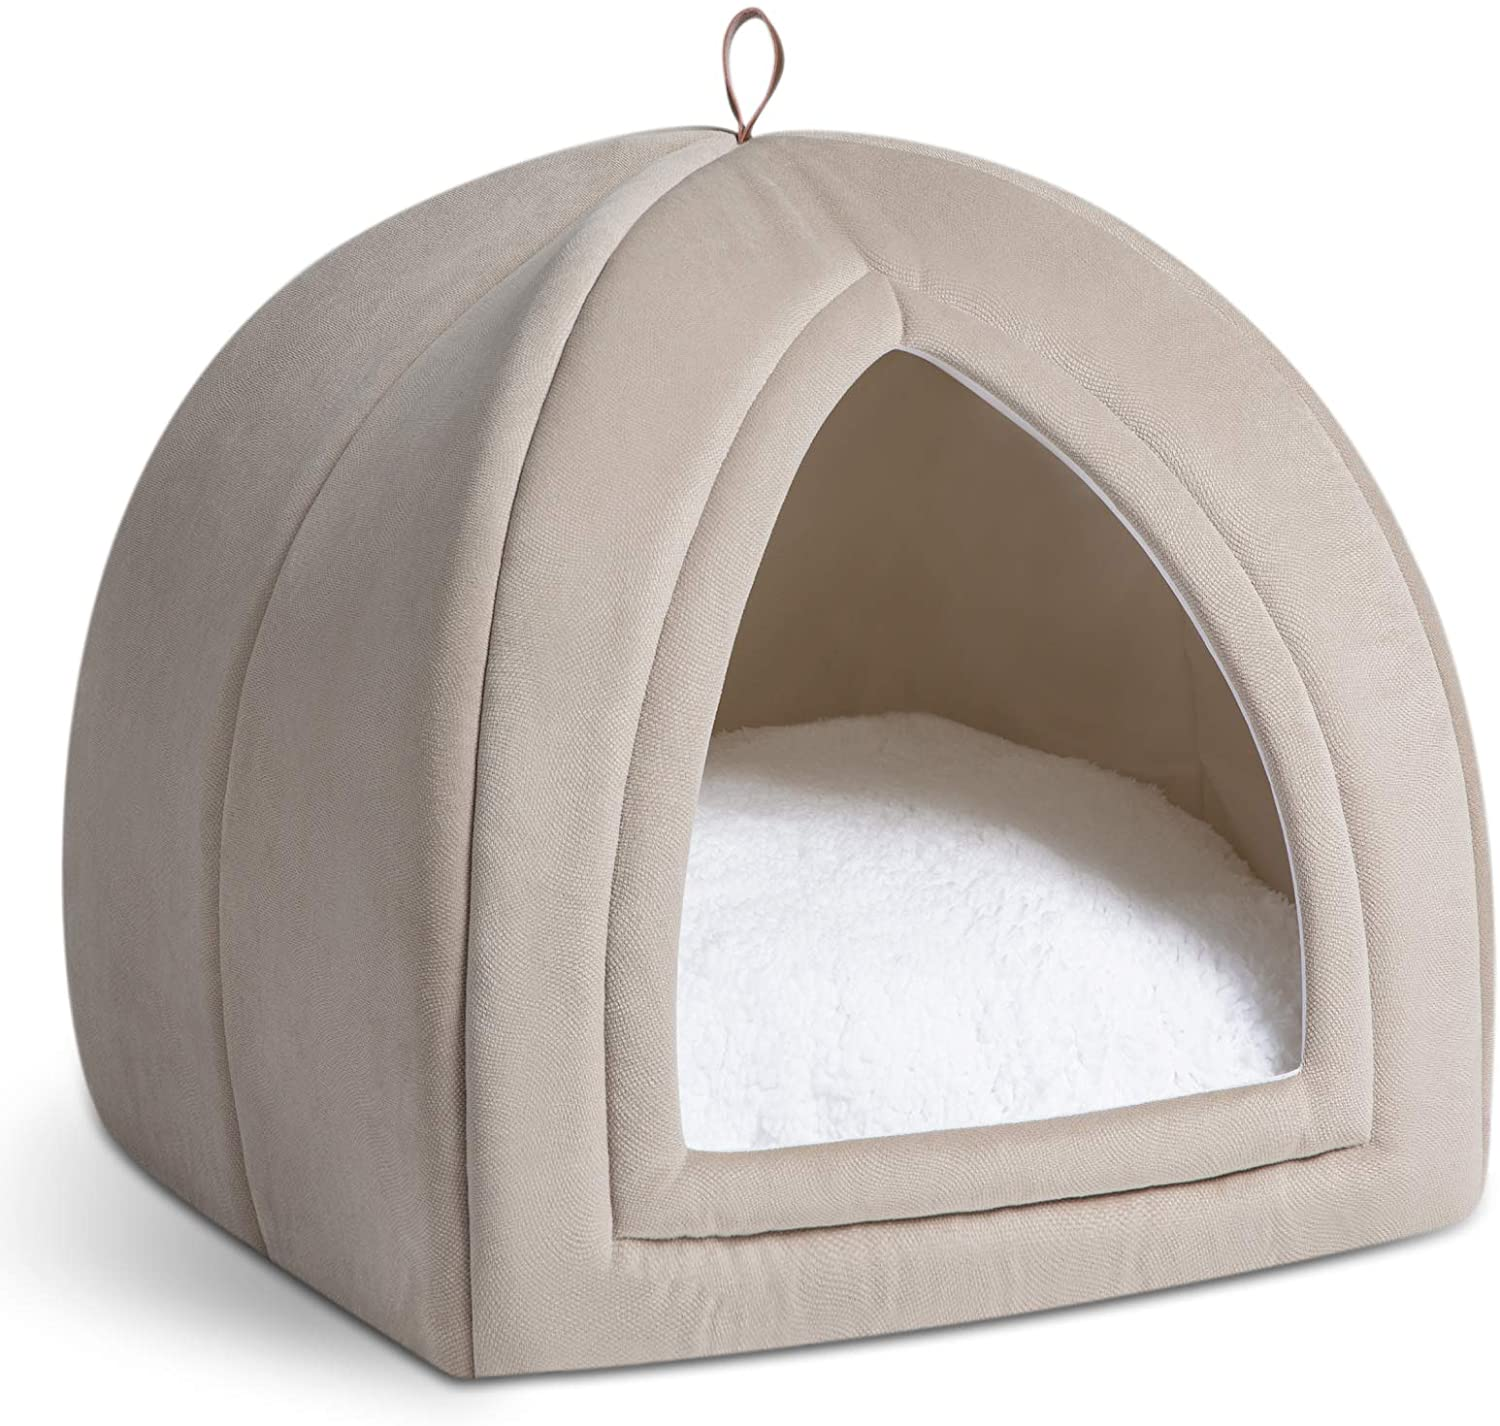 Bedsure Cat Bed For Indoor Cats Cat Houses Small Dog Bed 19 Inches 2 In 1 Cat Tent Kitten Bed Cat Hut Cat Cave With Removable Washable Cushioned Pillow Outdoor Dog